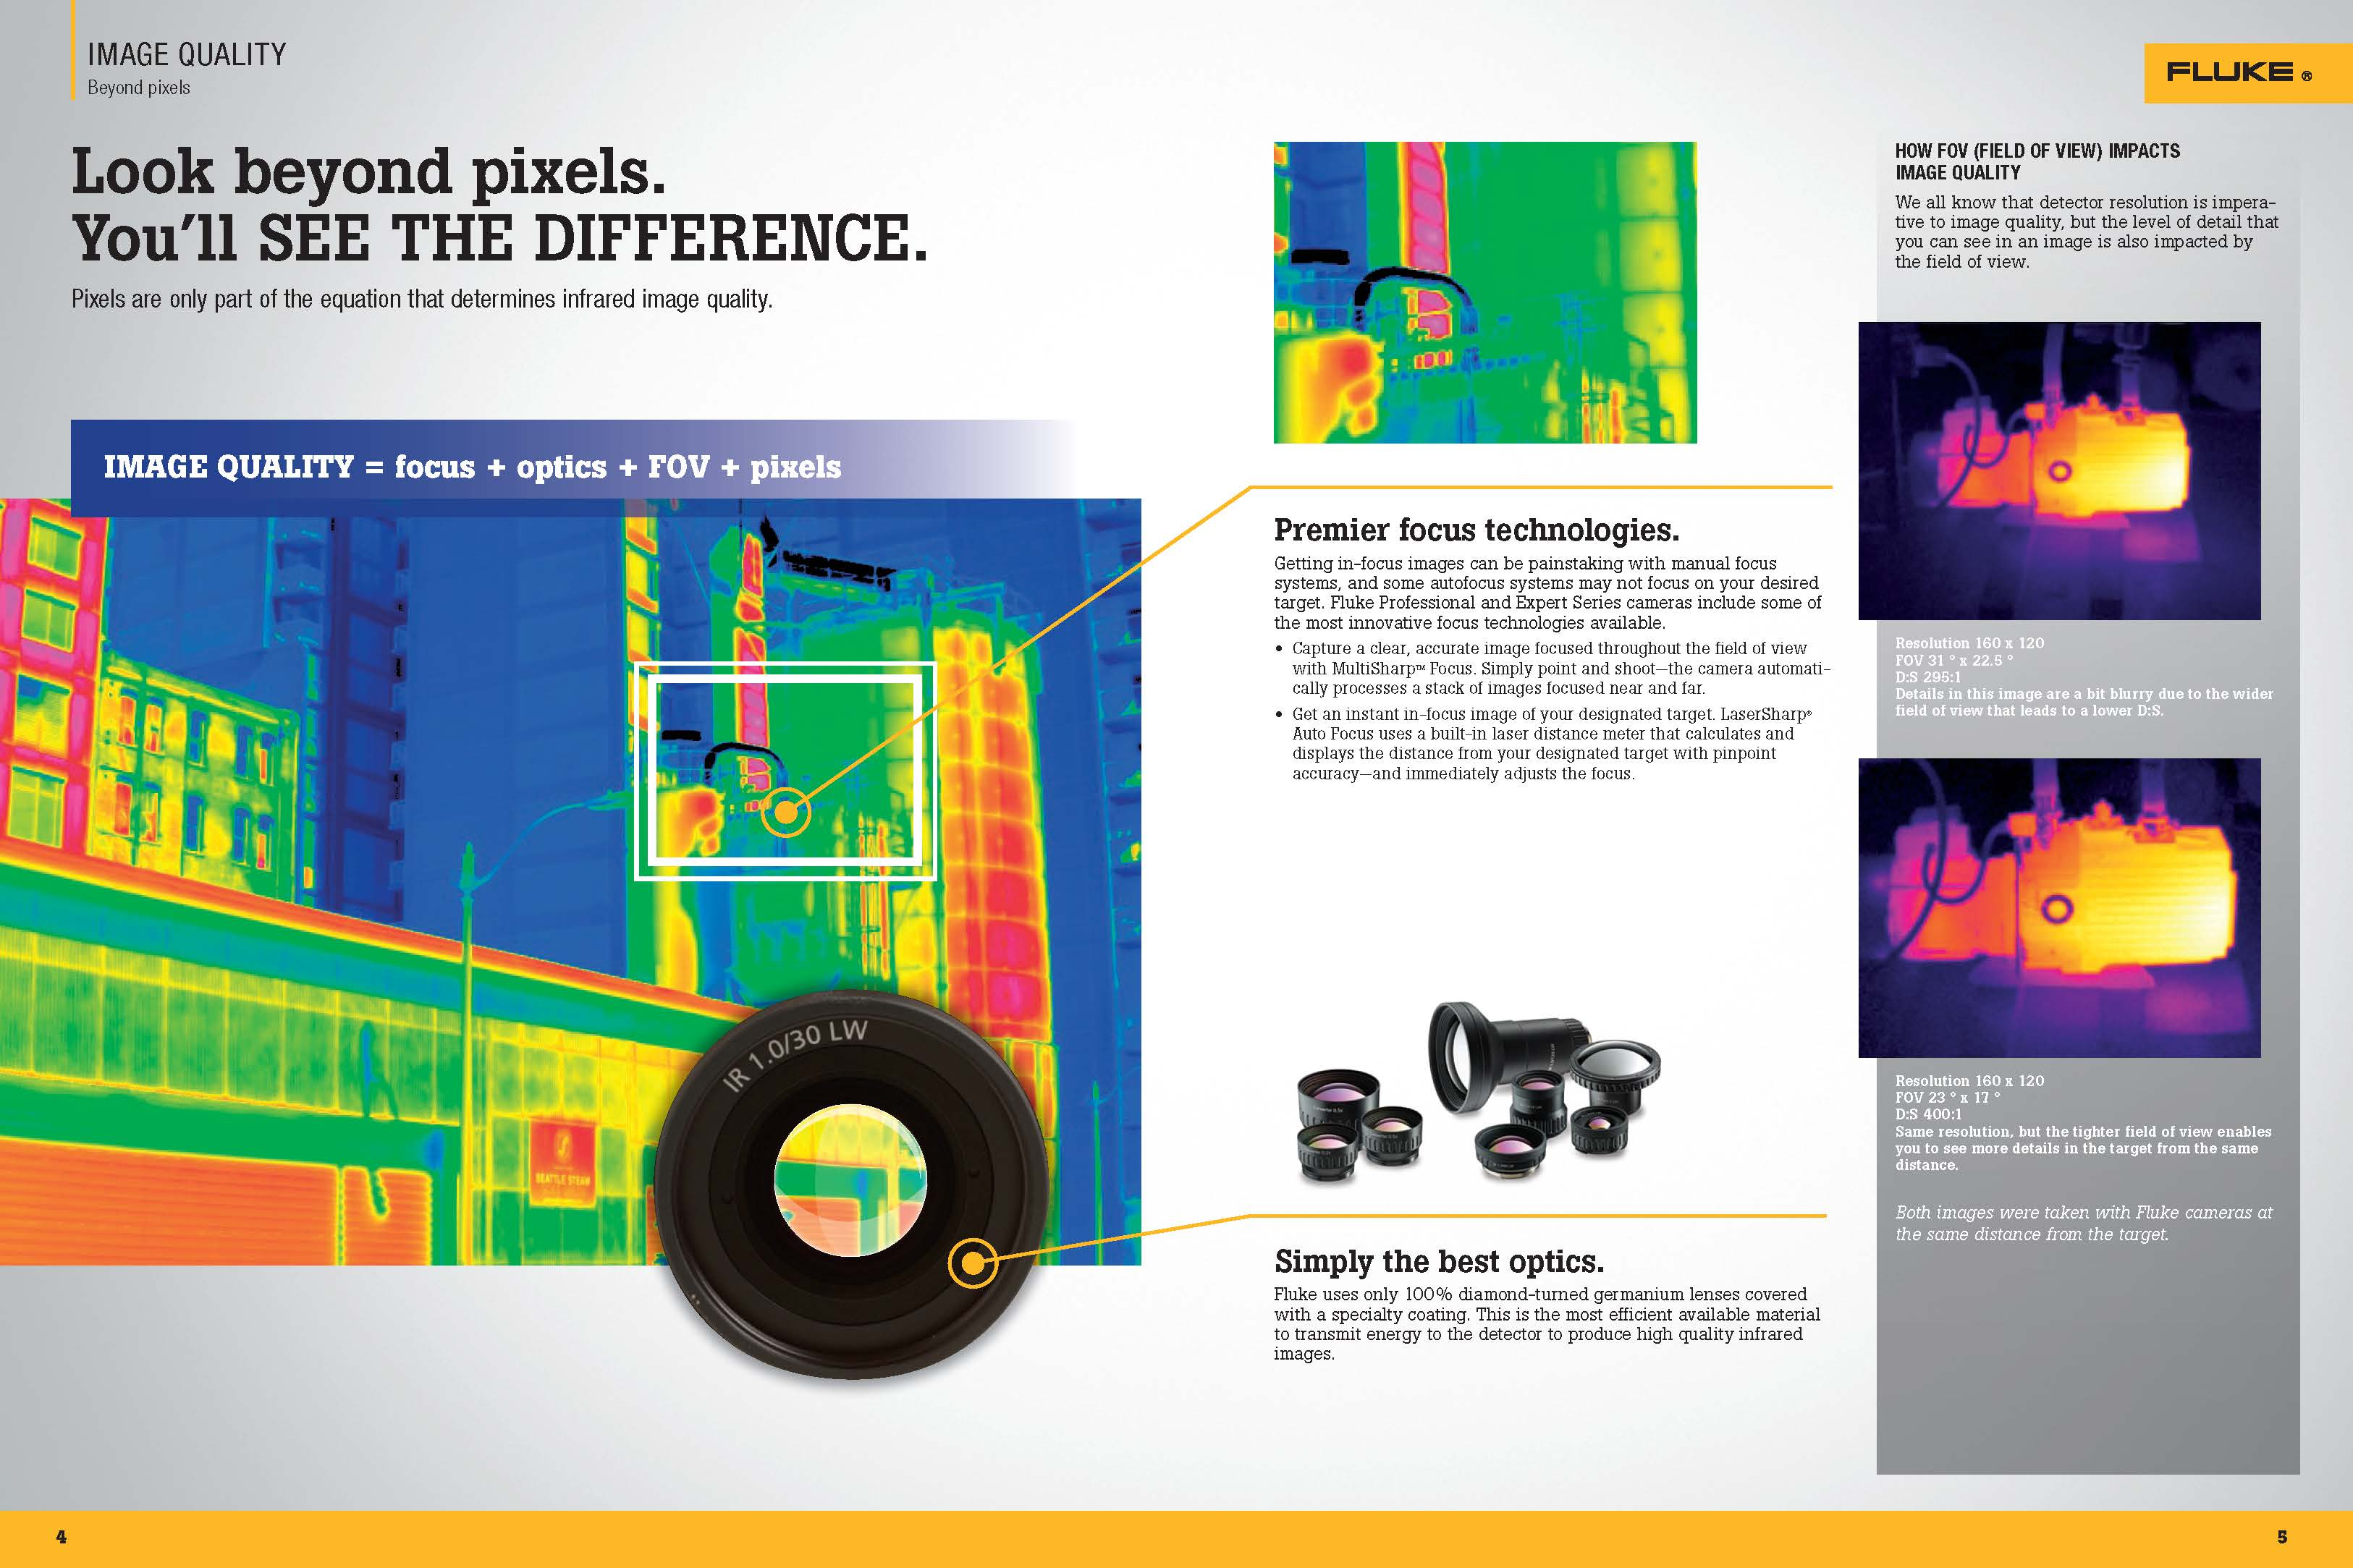 Fluke Thermography Product Family Brochure